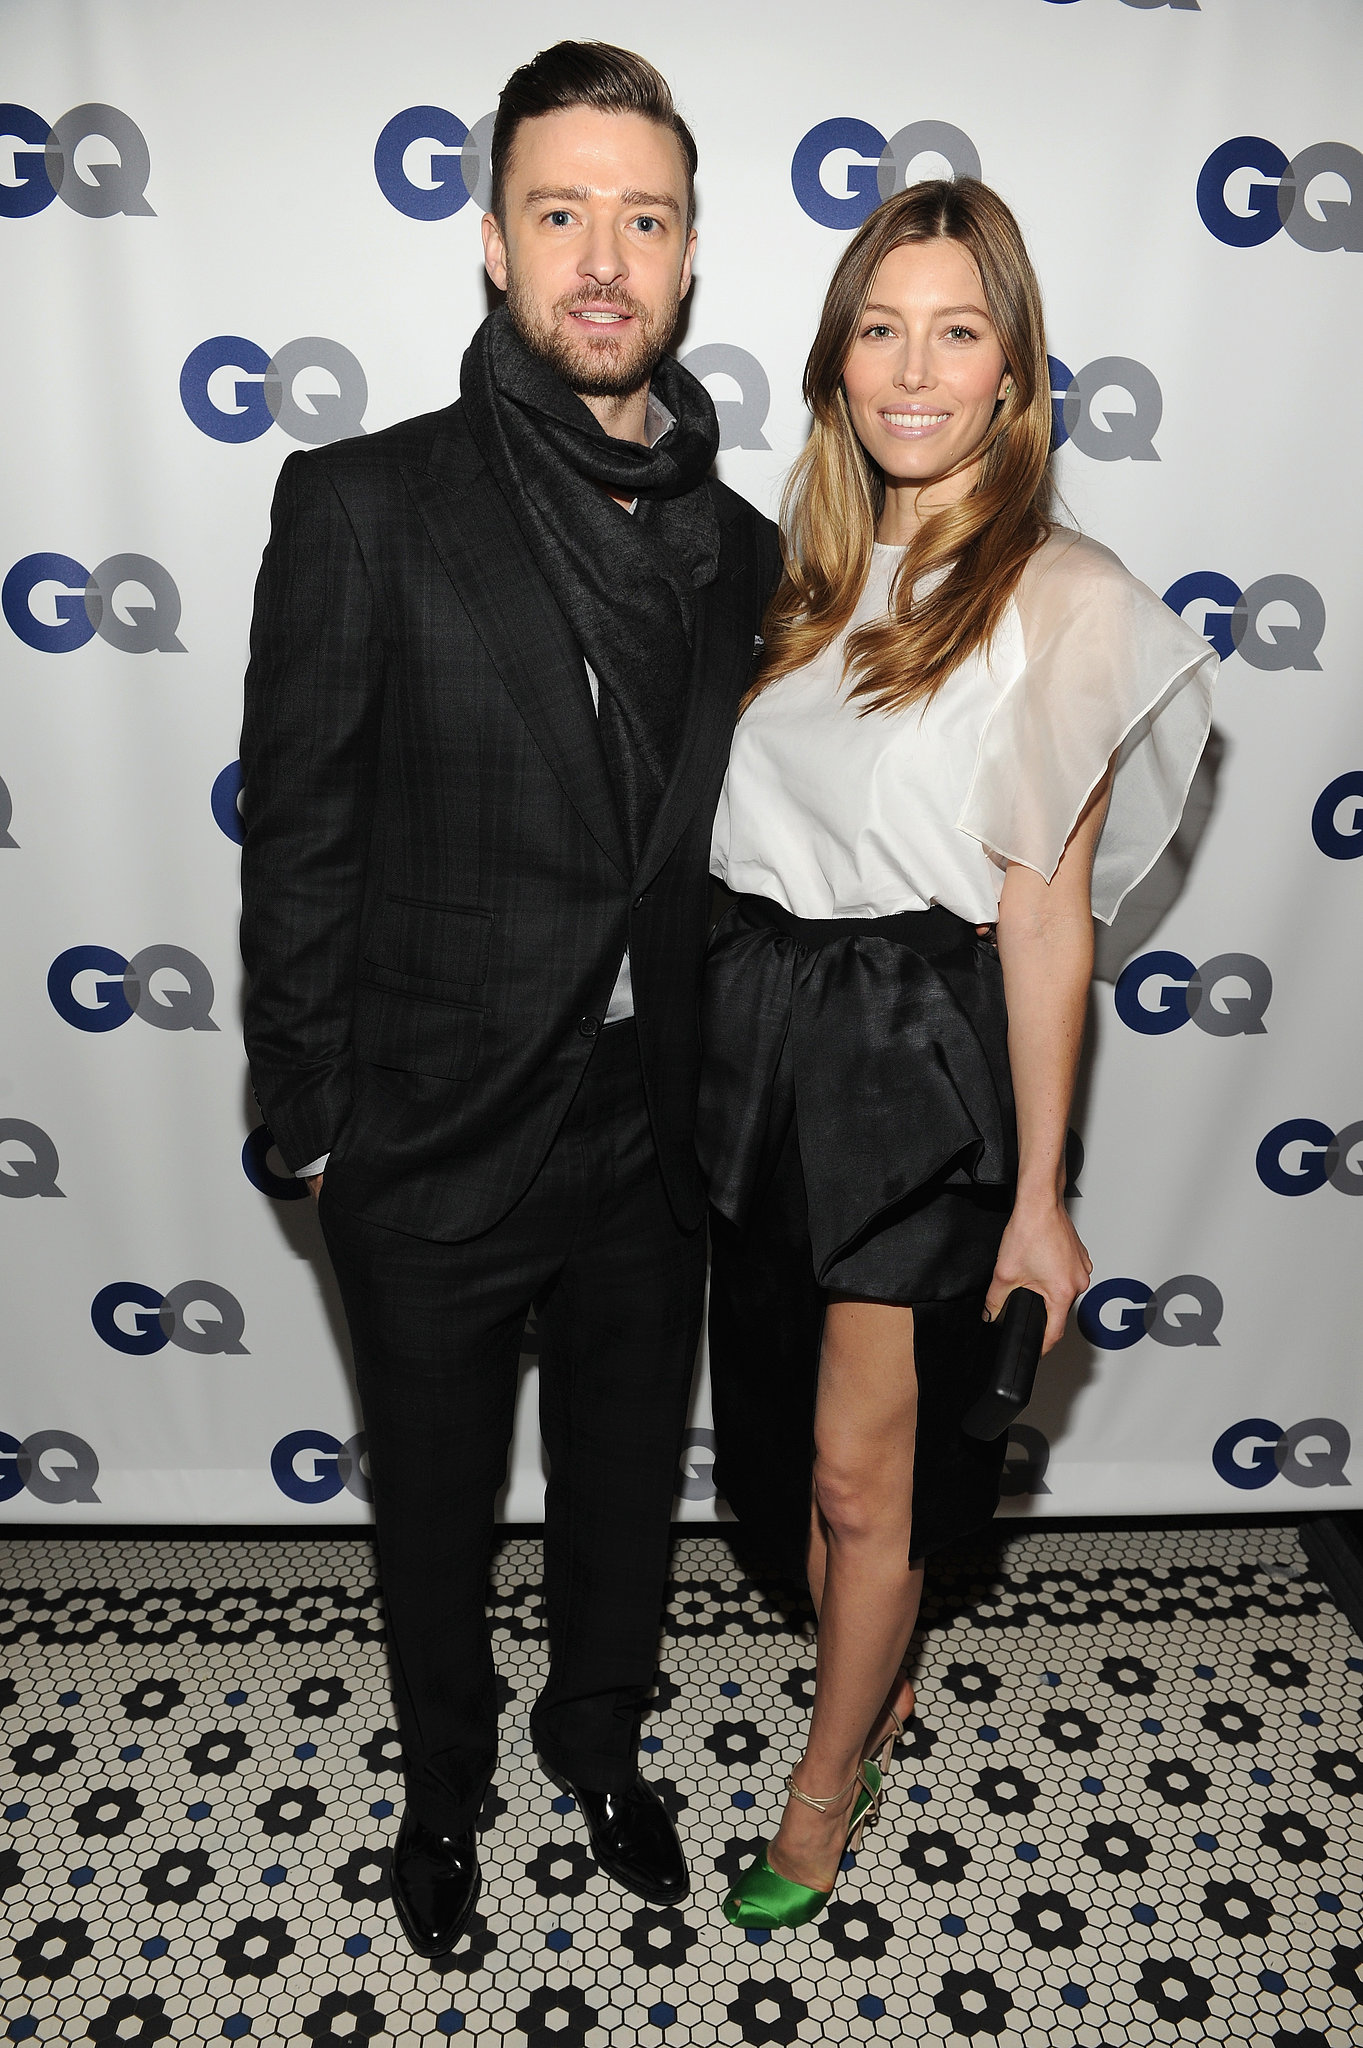 Justin Timberlake had the support of his wife, Jessica Biel, when he was  celebrated at the GQ Men of the Year dinner in NYC on Monday.